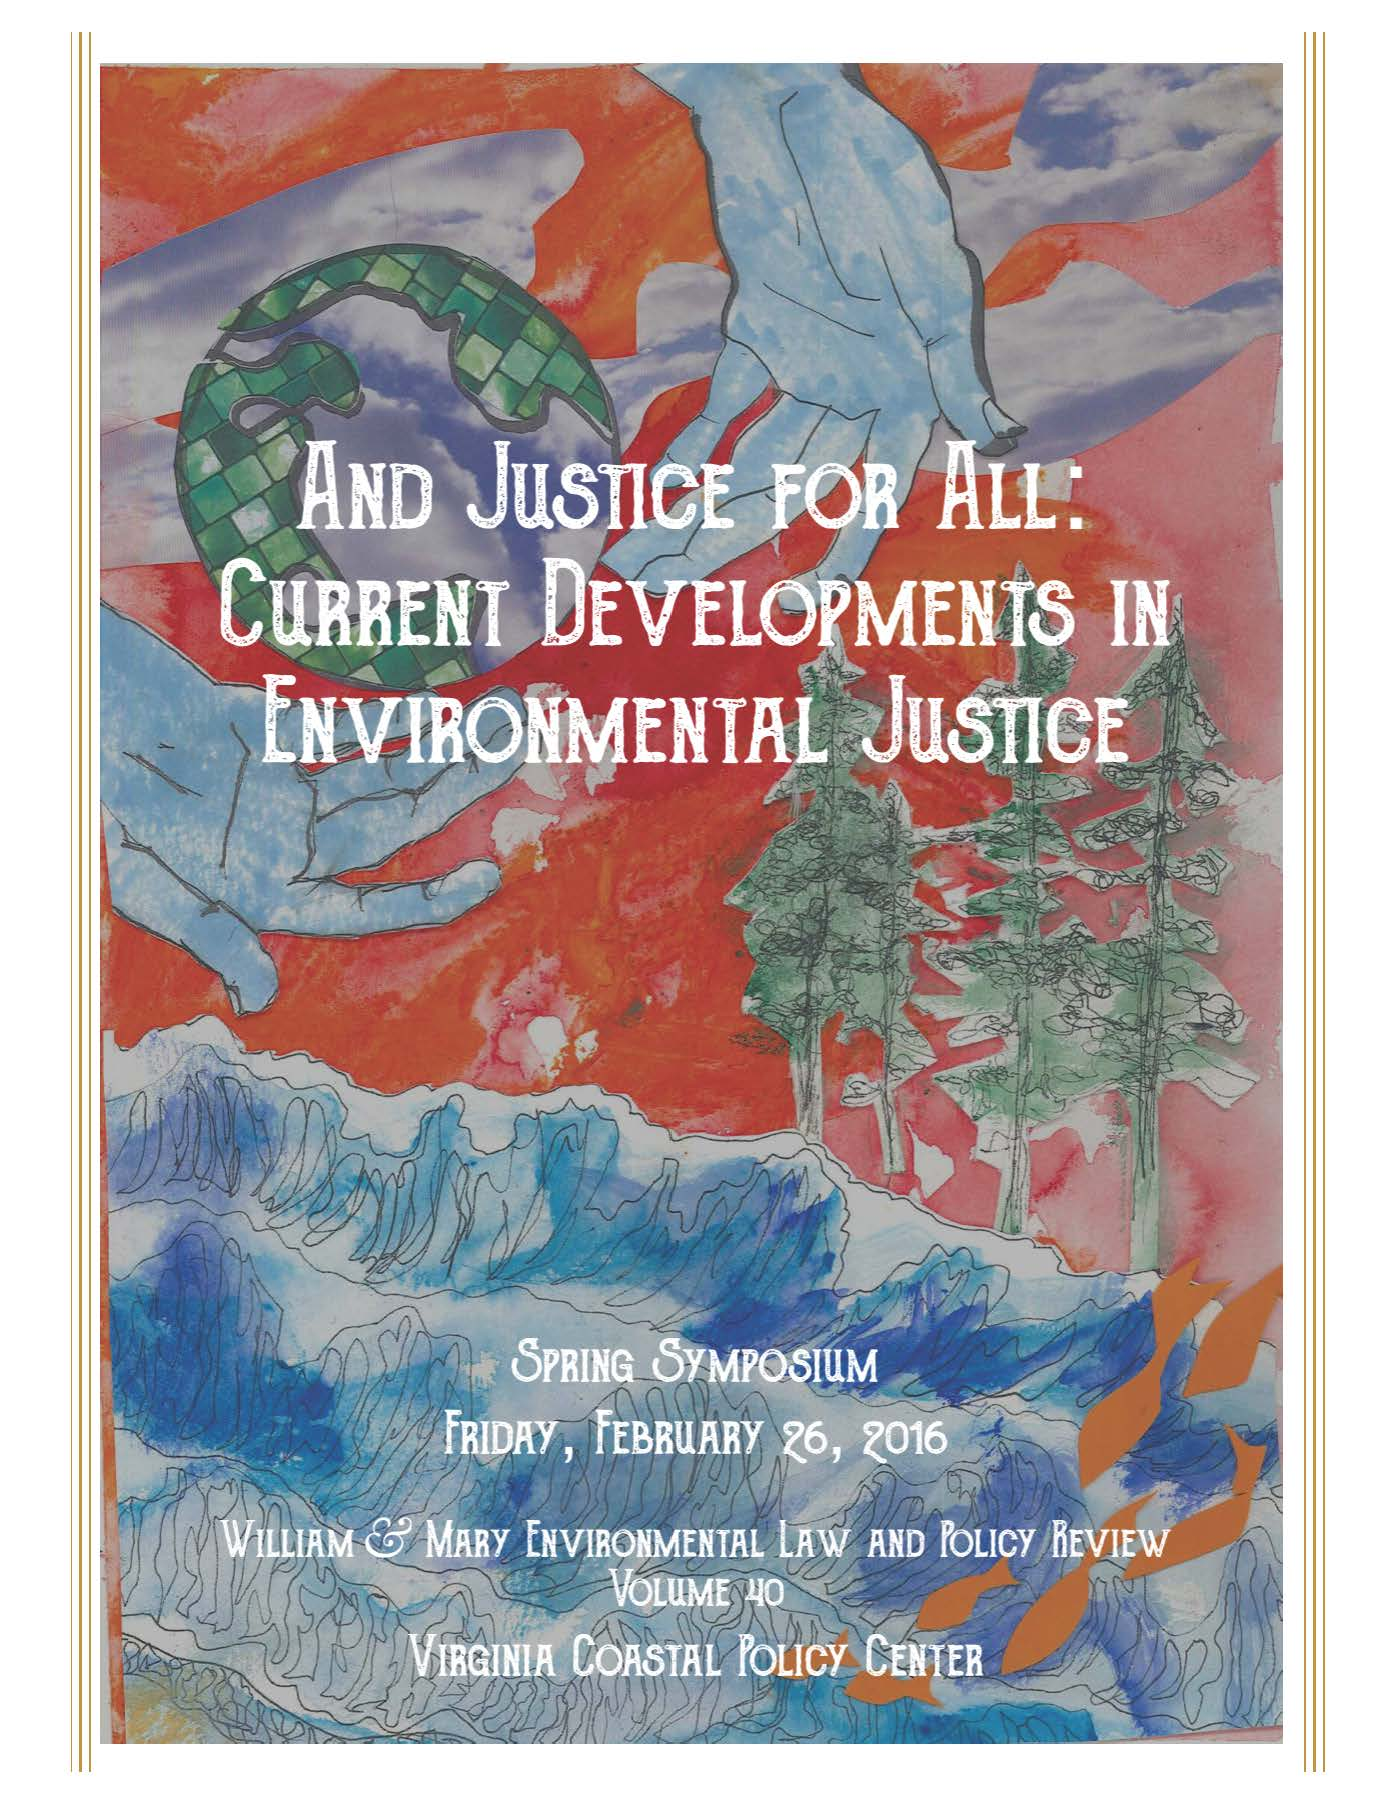 2016: And Justice for All: Current Developments in Environmental Justice